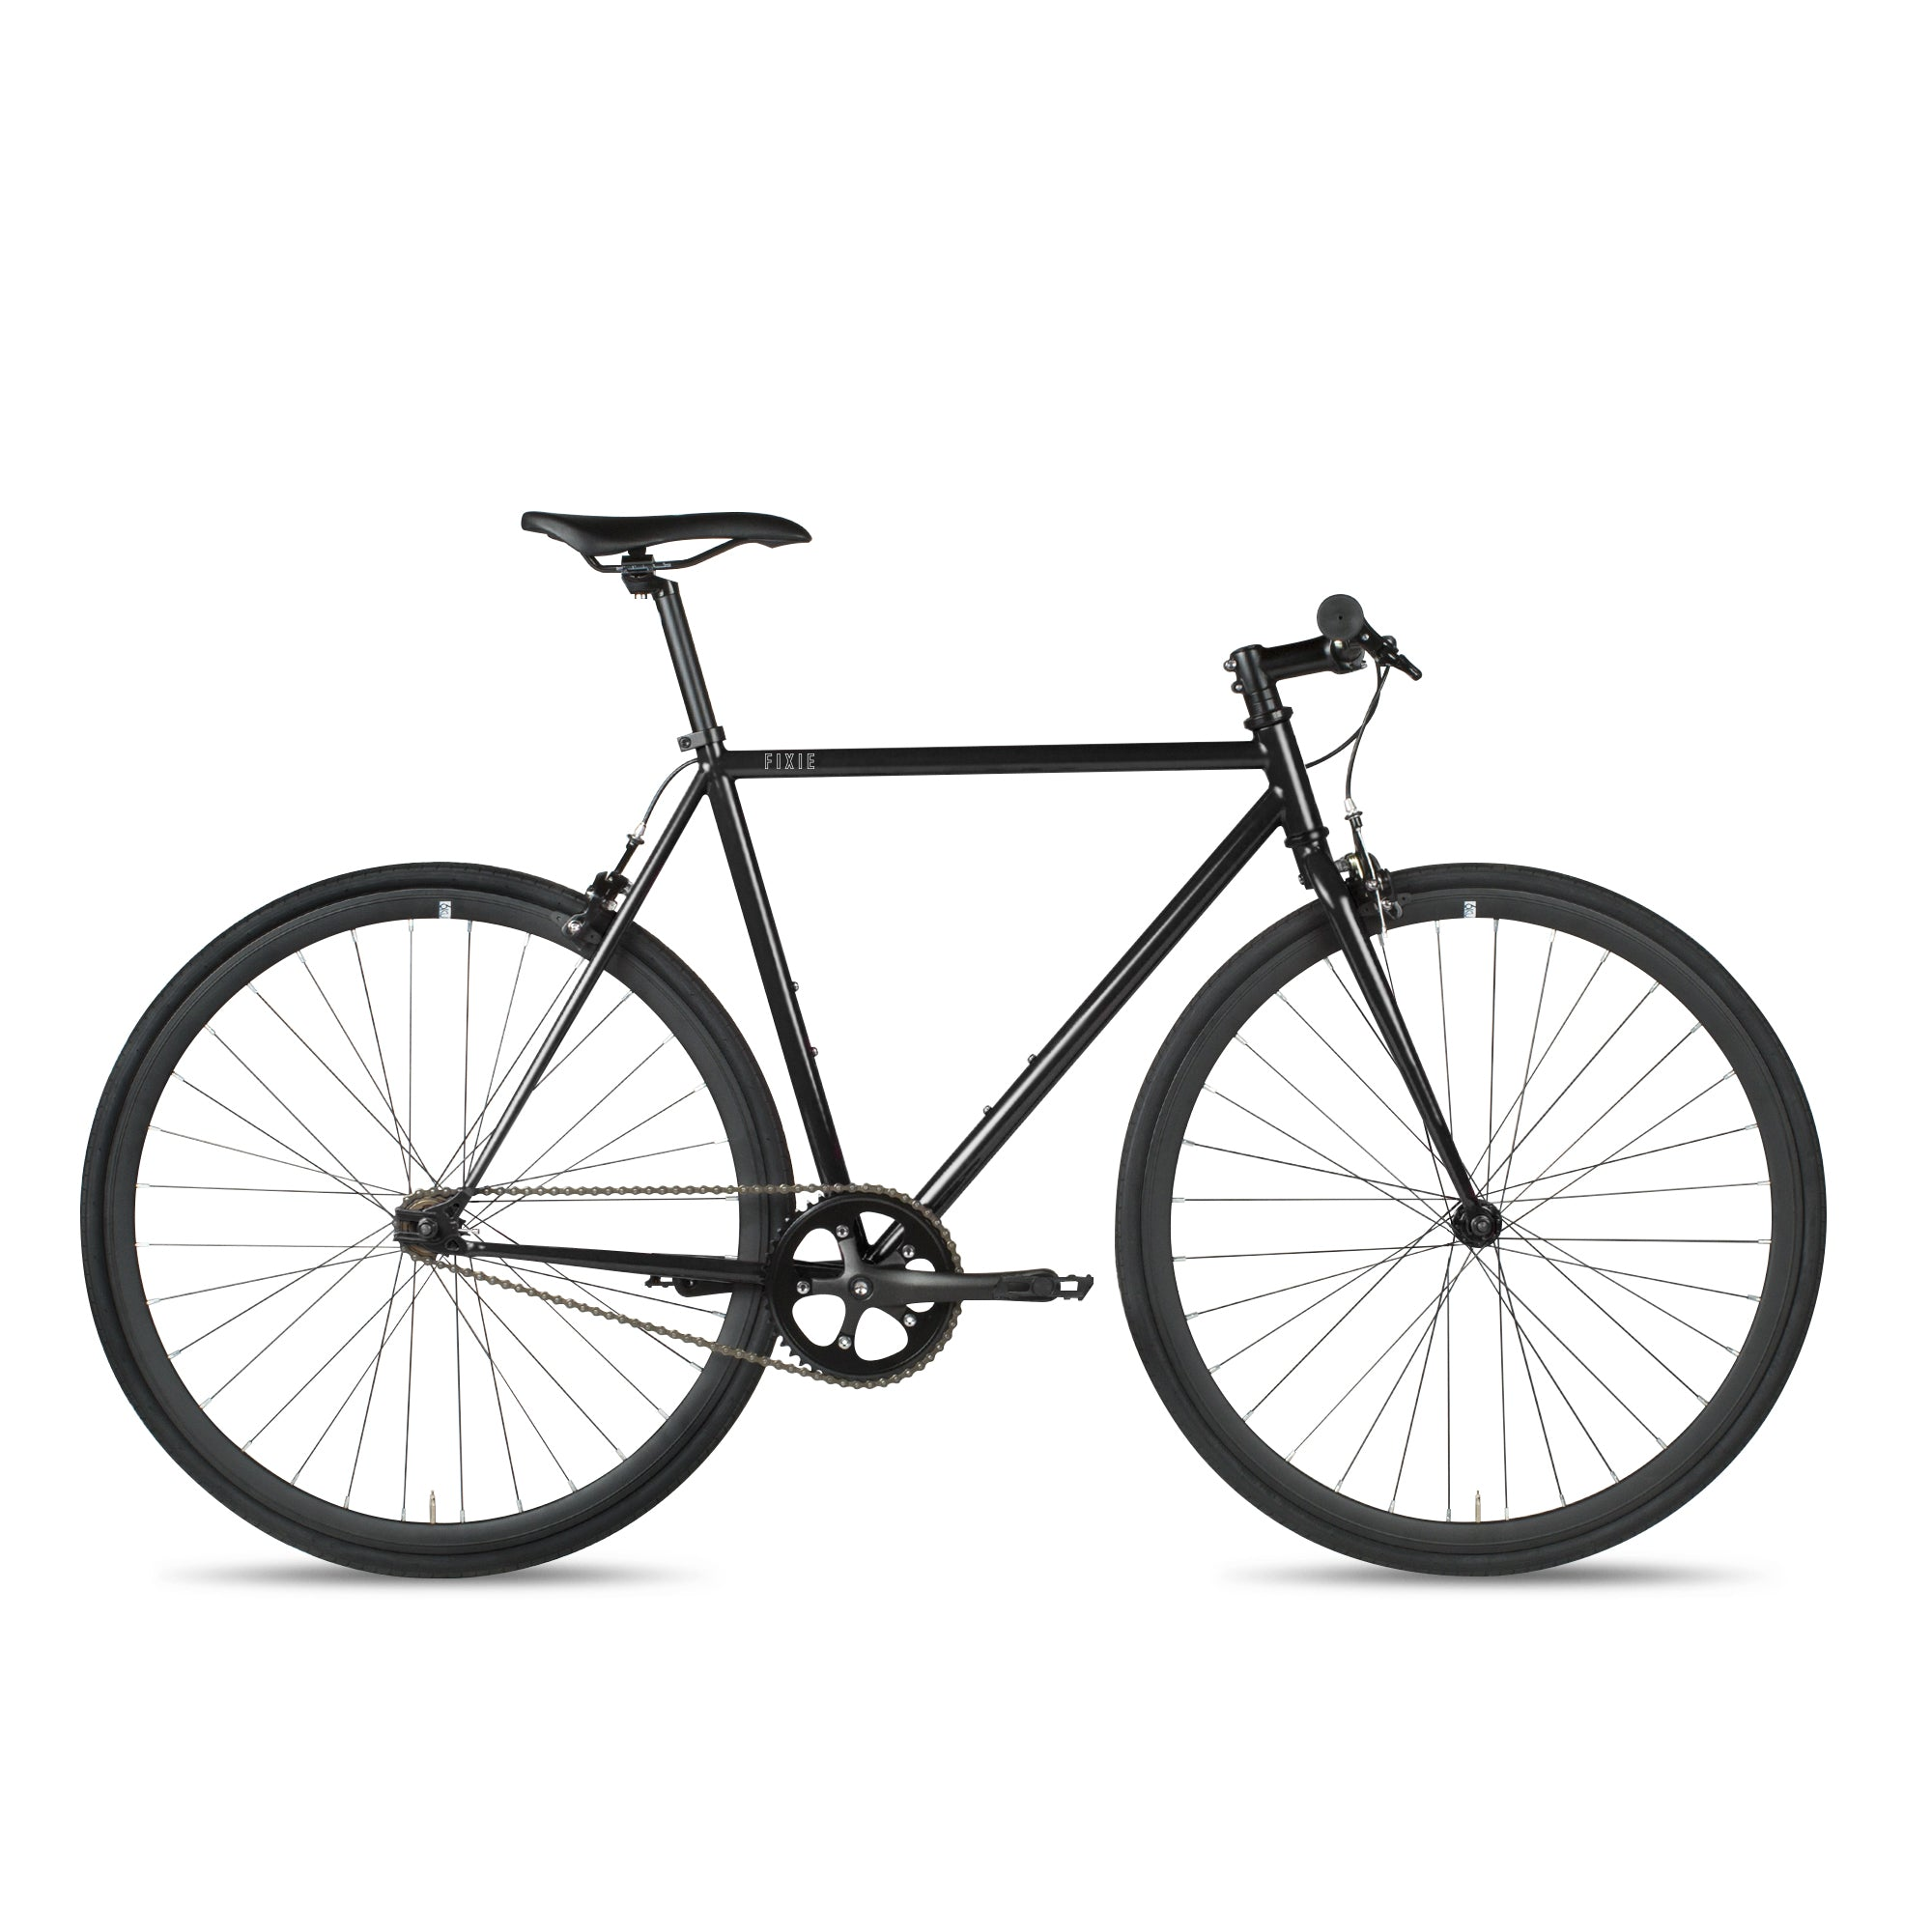 6KU black fixie bike